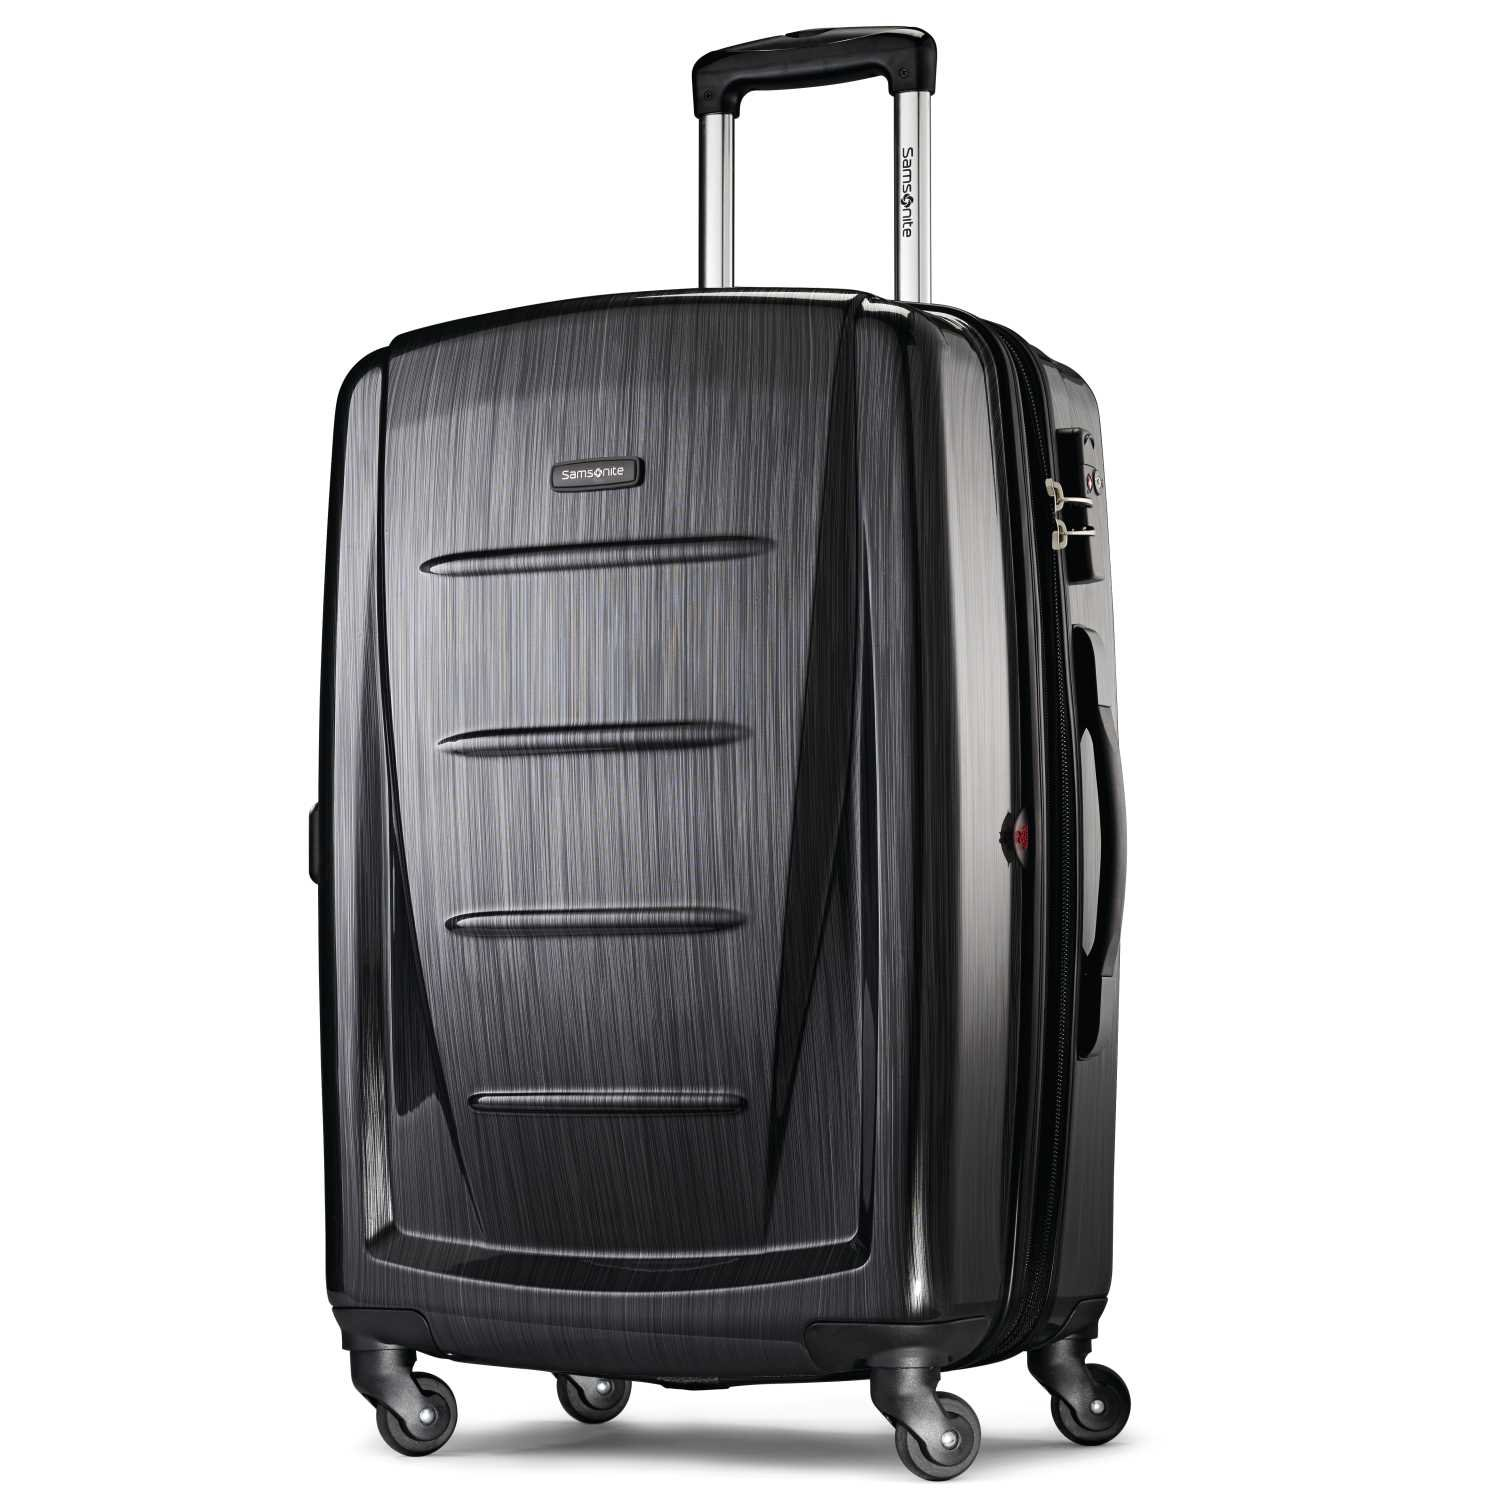 Samsonite Winfield 2 Hardside 24'' Luggage, Brushed Anthracite by Samsonite (Image #8)